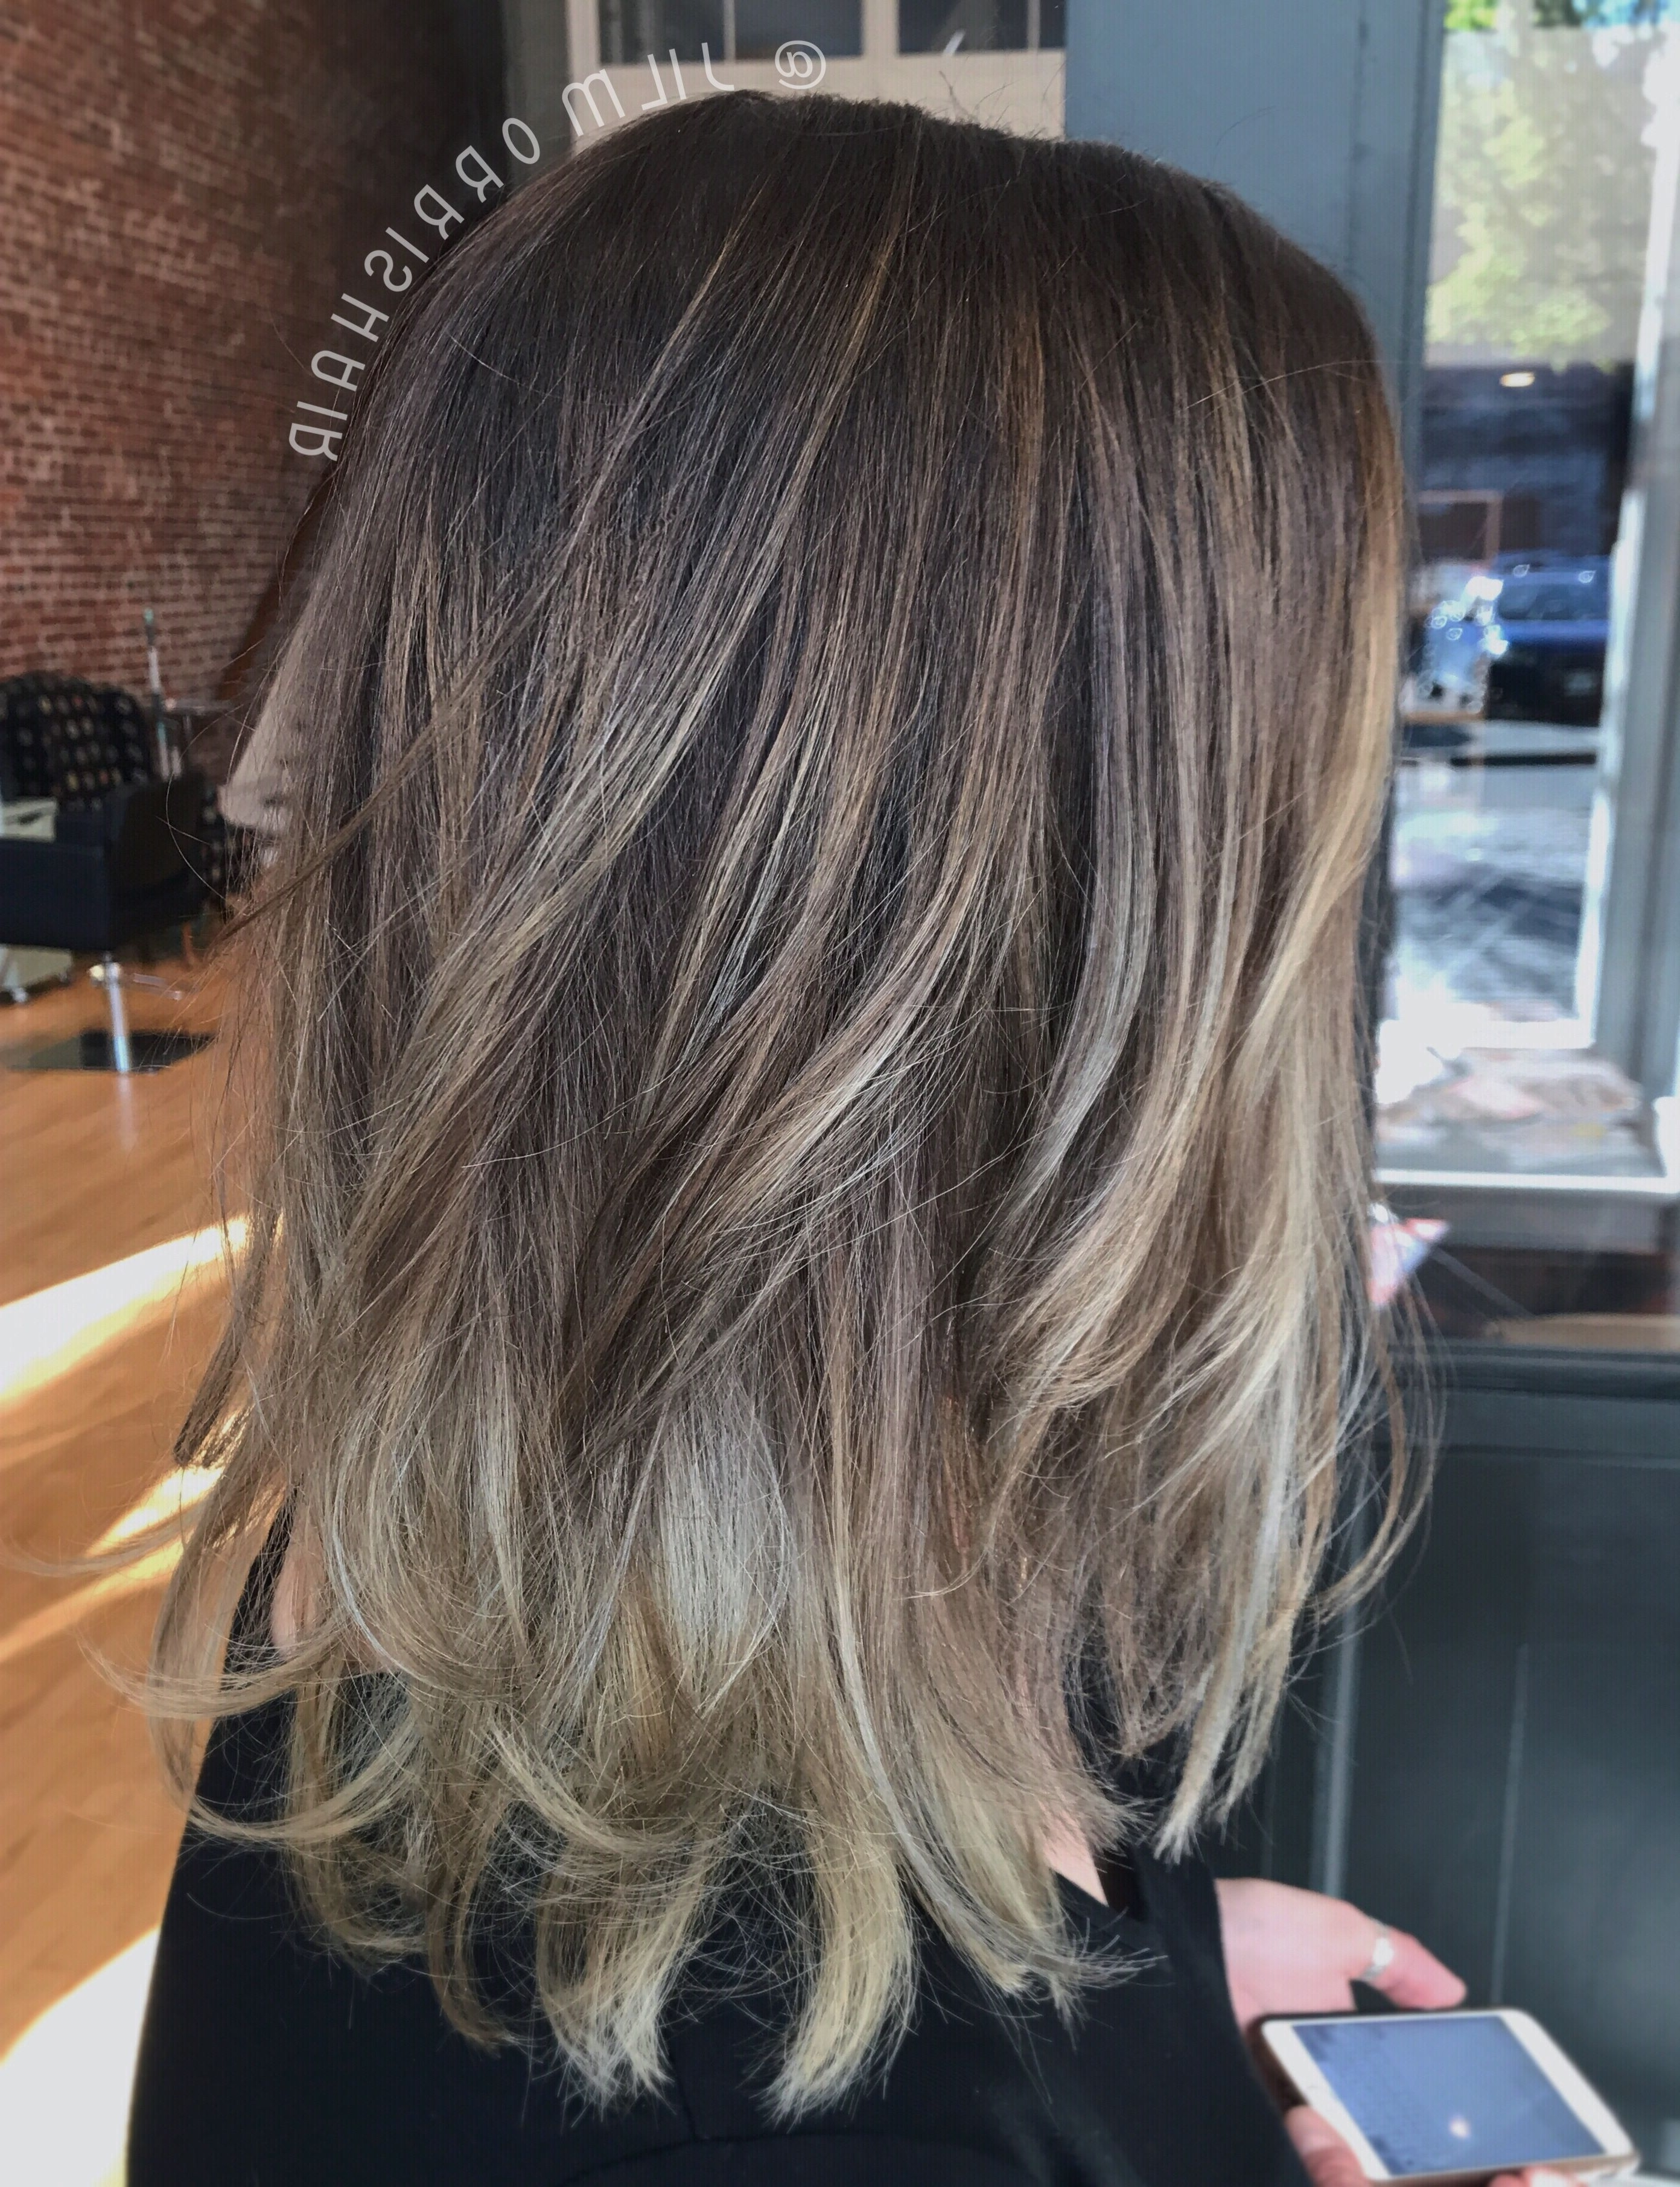 Trendy Light Ash Locks Blonde Hairstyles With Regard To Dark Ash Blonde Sombré, Balayage Highlights With Rooty Lowlights (View 17 of 20)